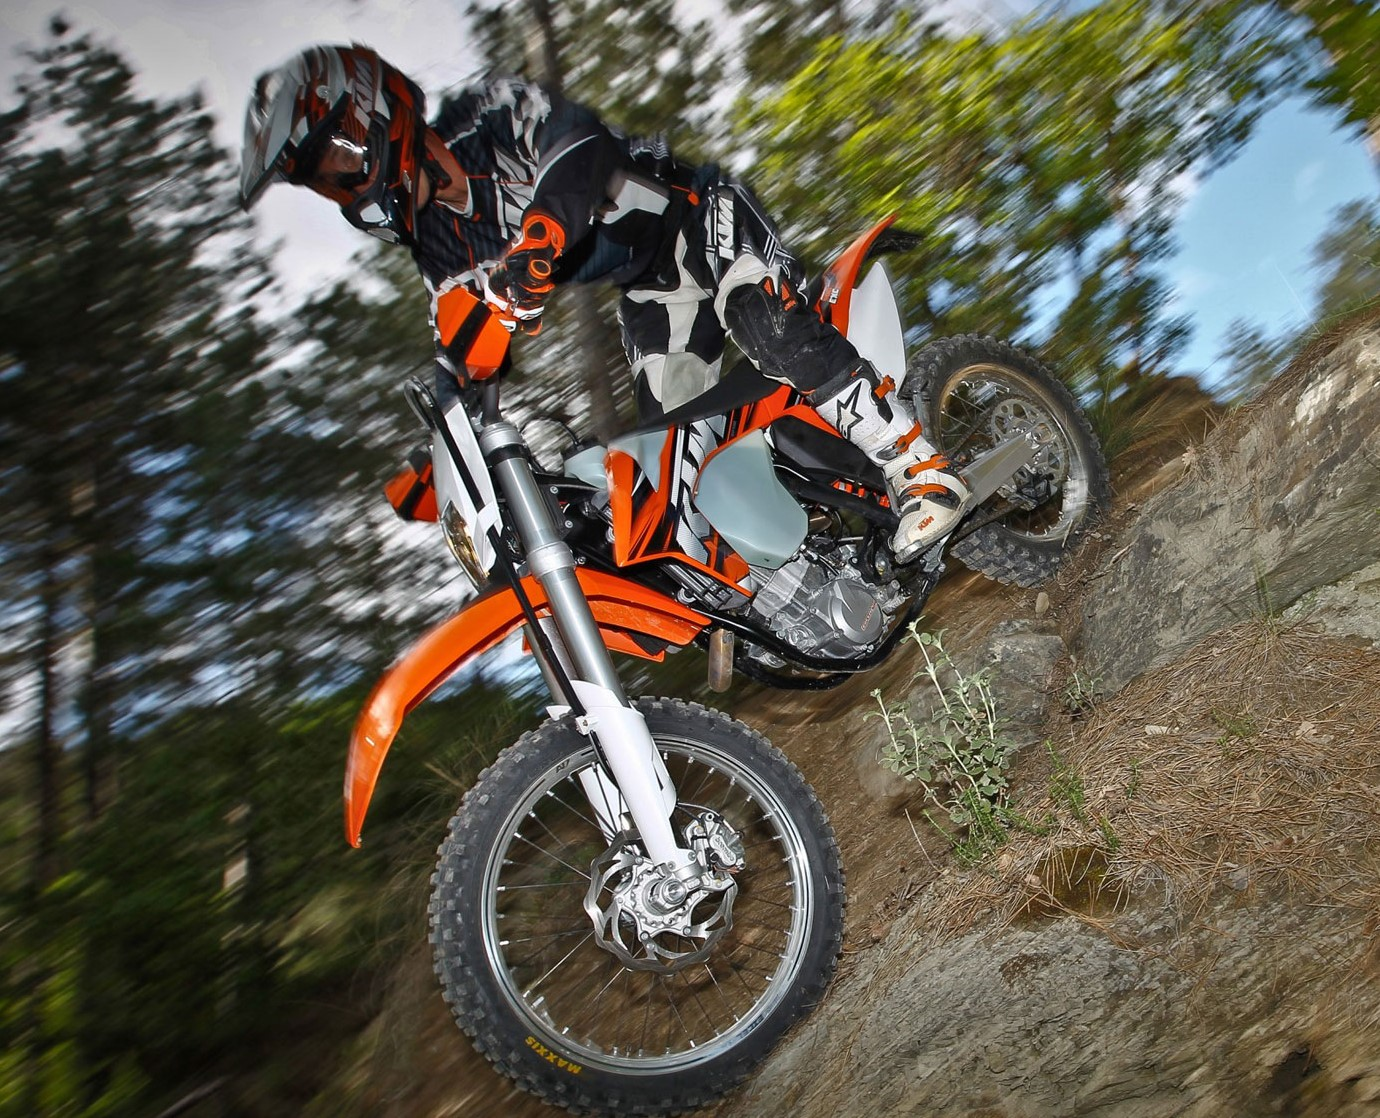 Ktm Motorcycle Manuals  June 2019